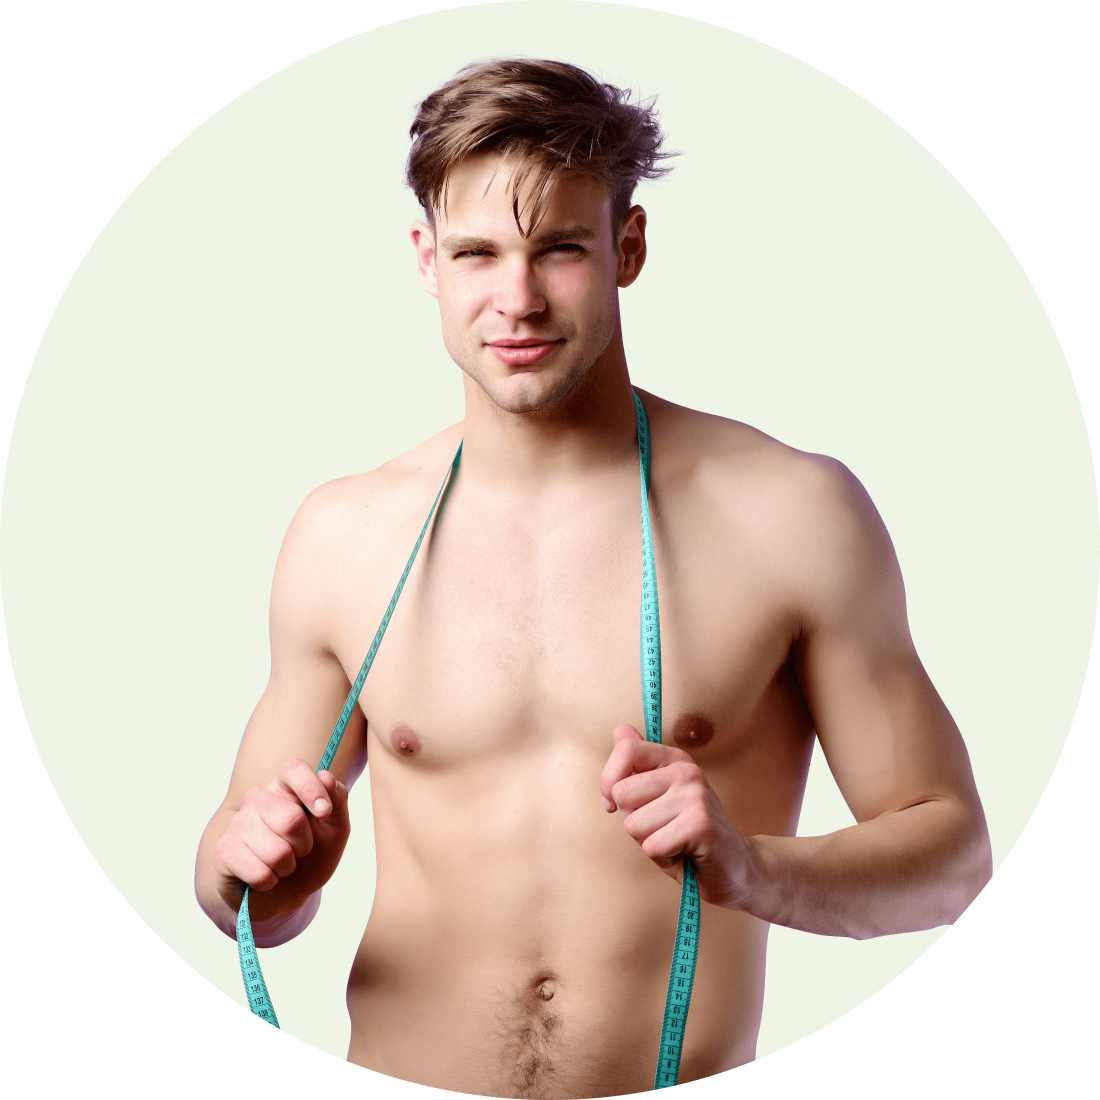 Why men choose Gynecomastia?